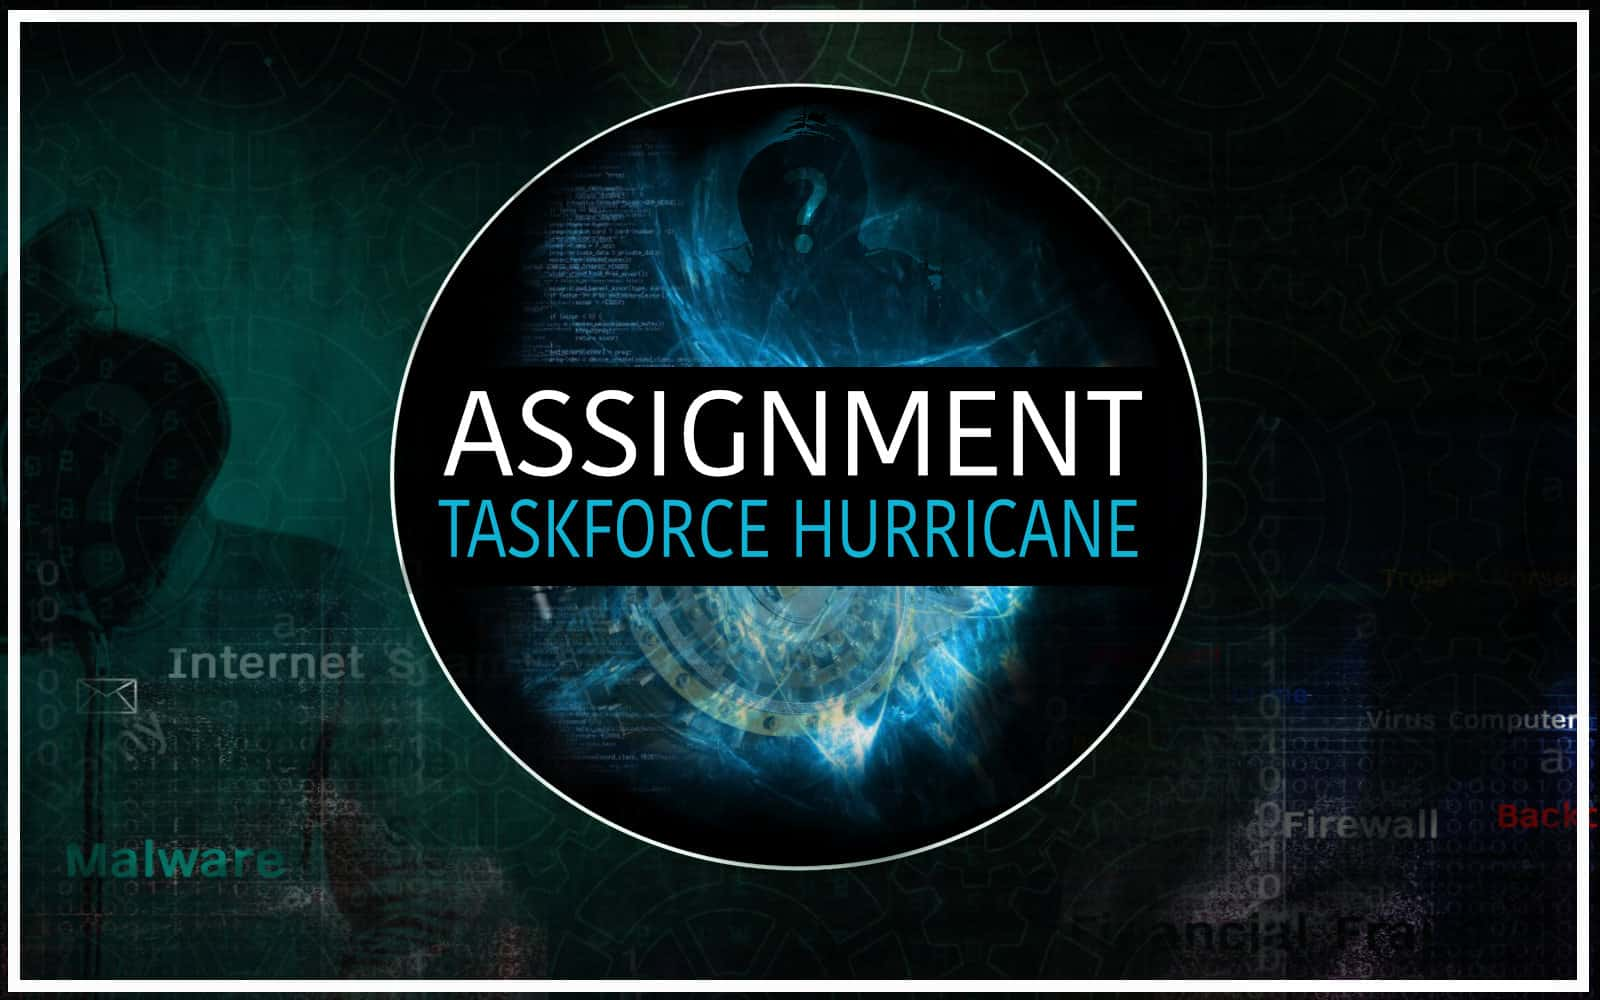 taskforce hurricane